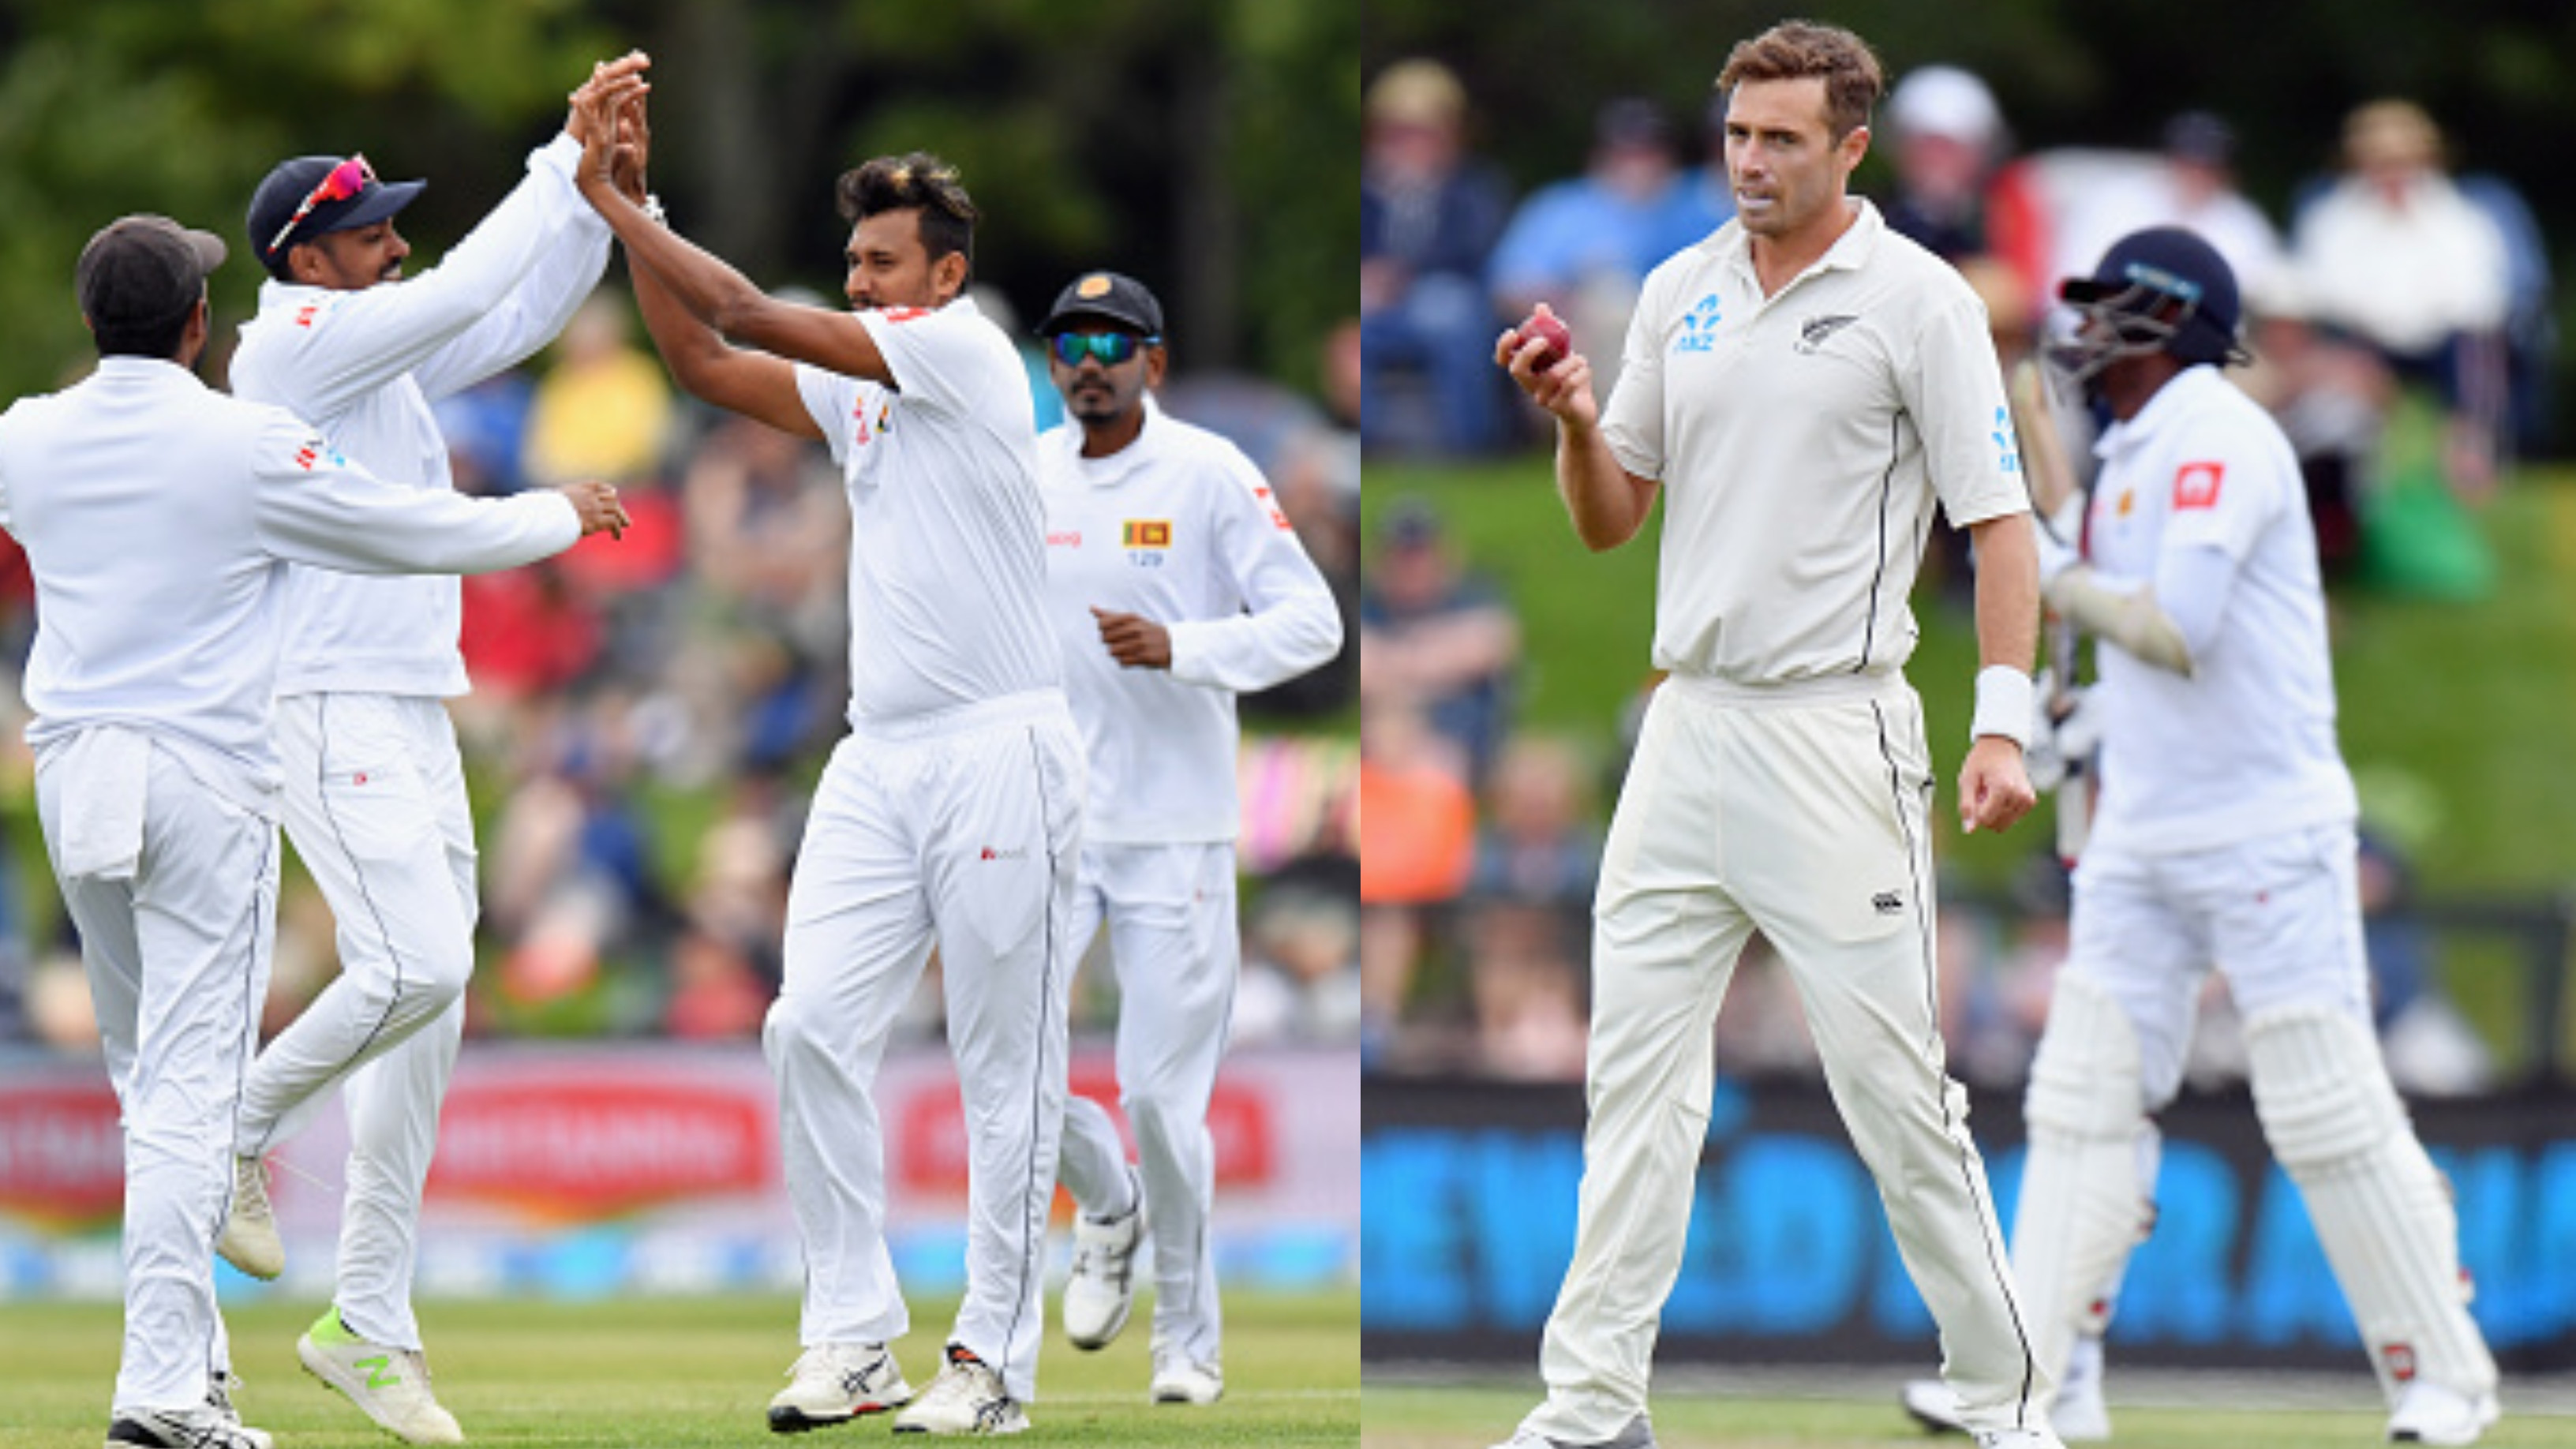 NZ v SL 2018-19: Tim Southee praises Sri Lanka pace attack in Christchurch Test